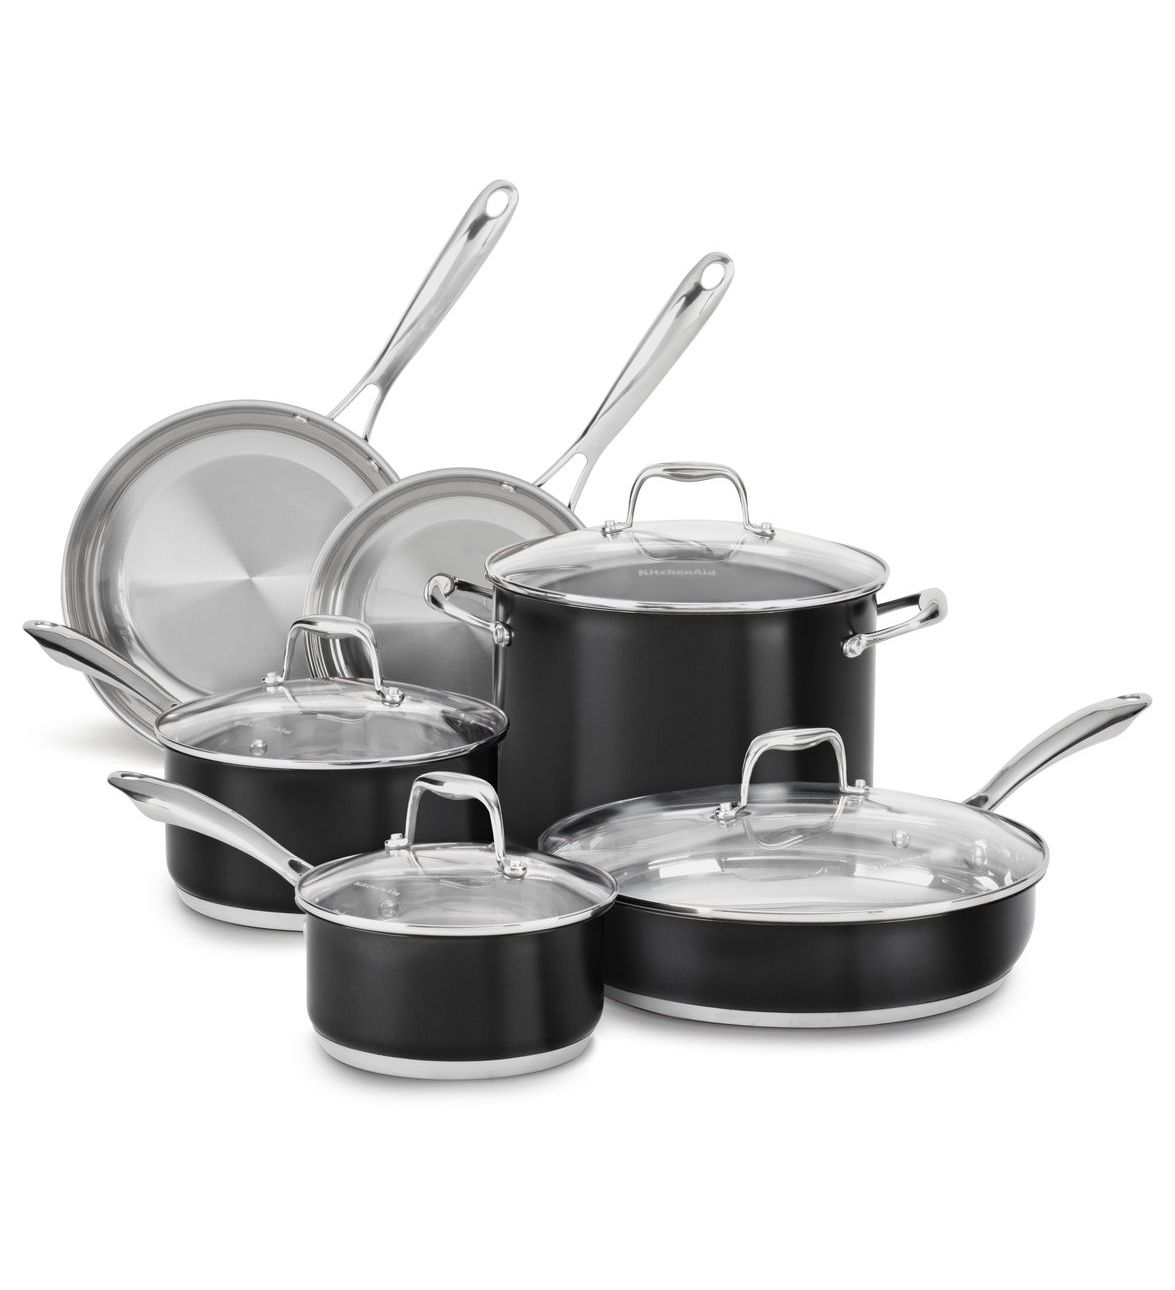 KitchenAid® Stainless Steel 10-Piece Set